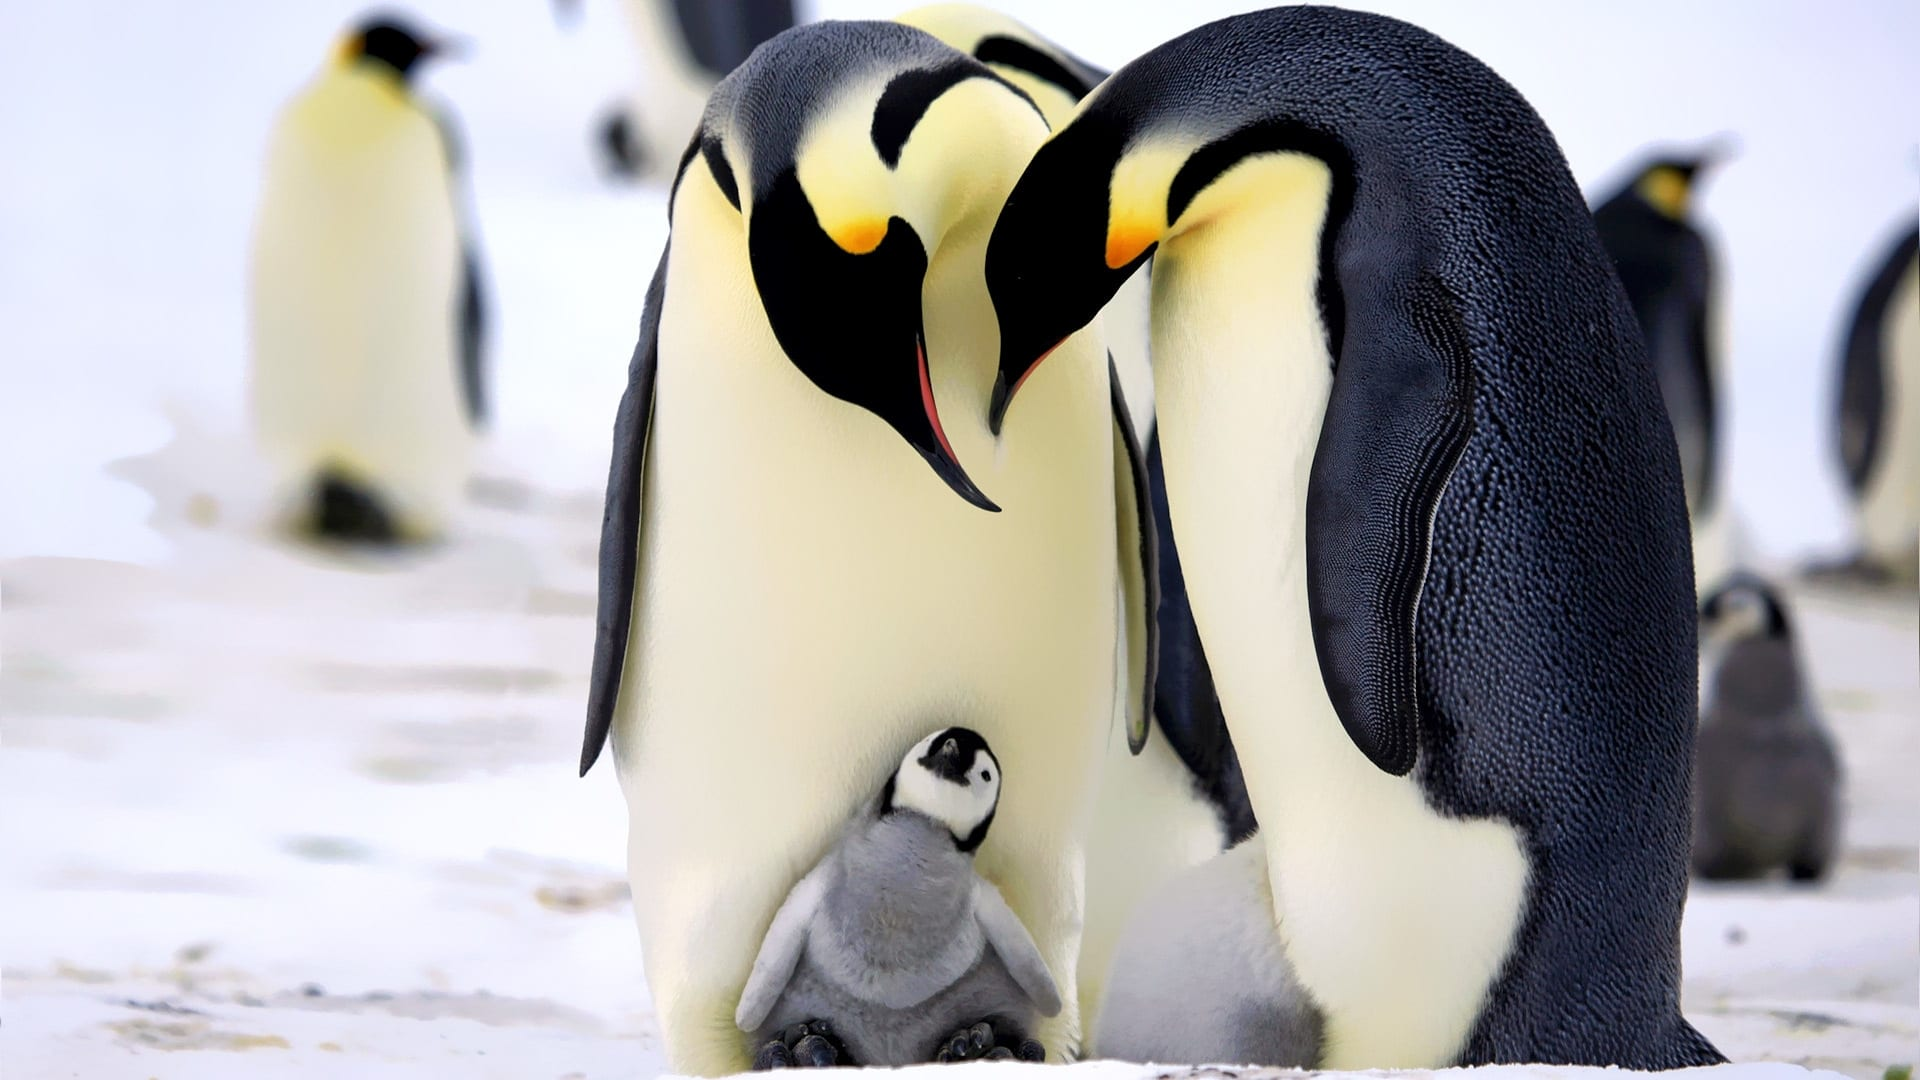 twins-sex-large-pictures-of-babes-penguins